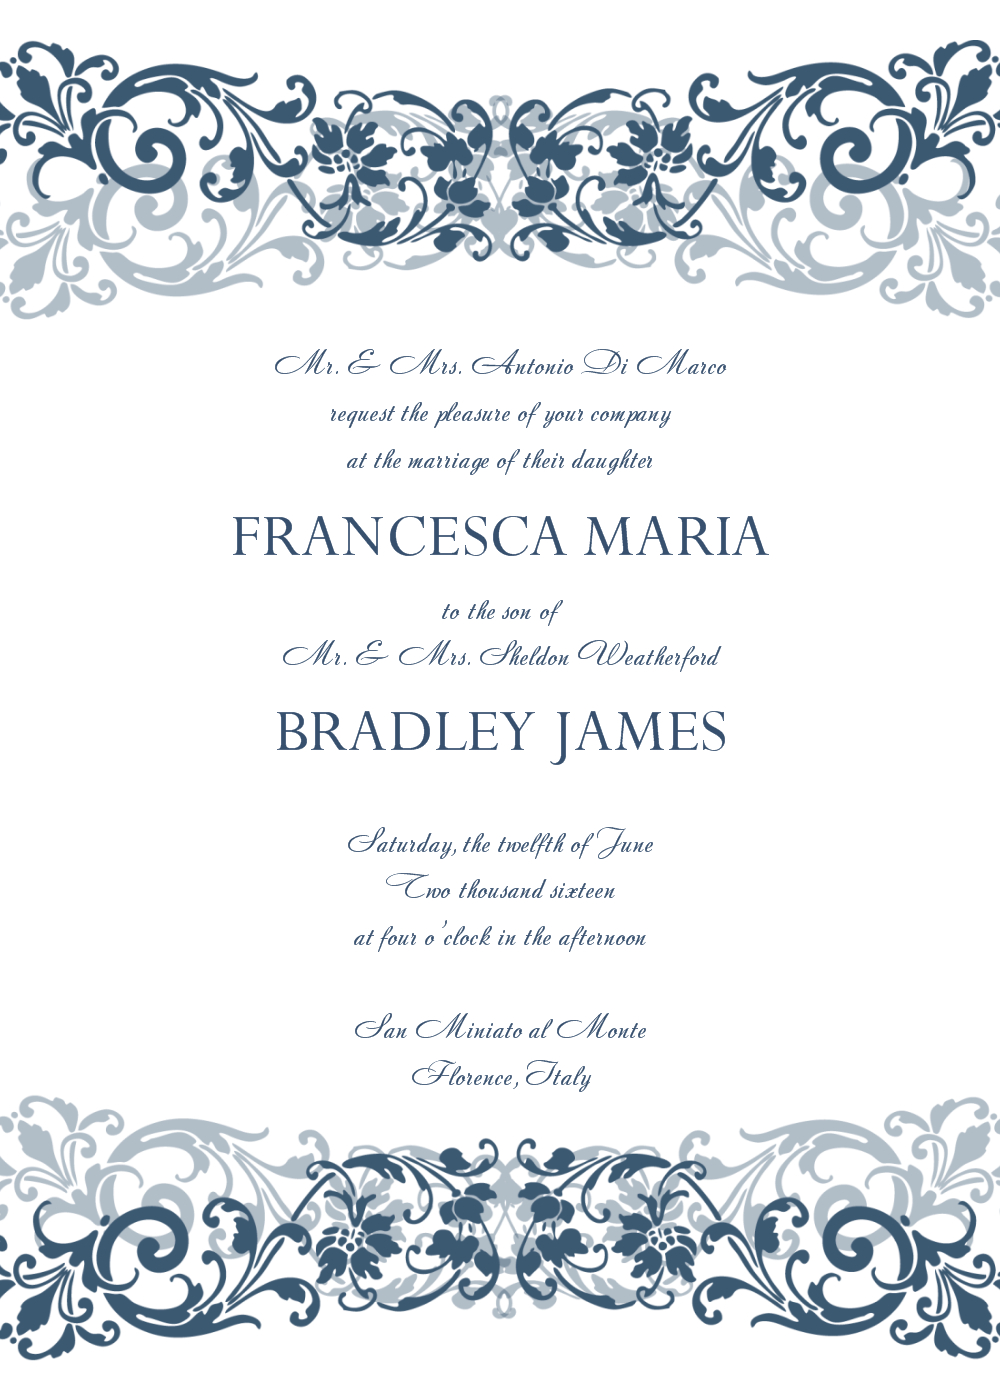 Free Wedding Invitation Templates For Word | Wedding Invitation - Free Printable Wedding Invitation Templates For Word